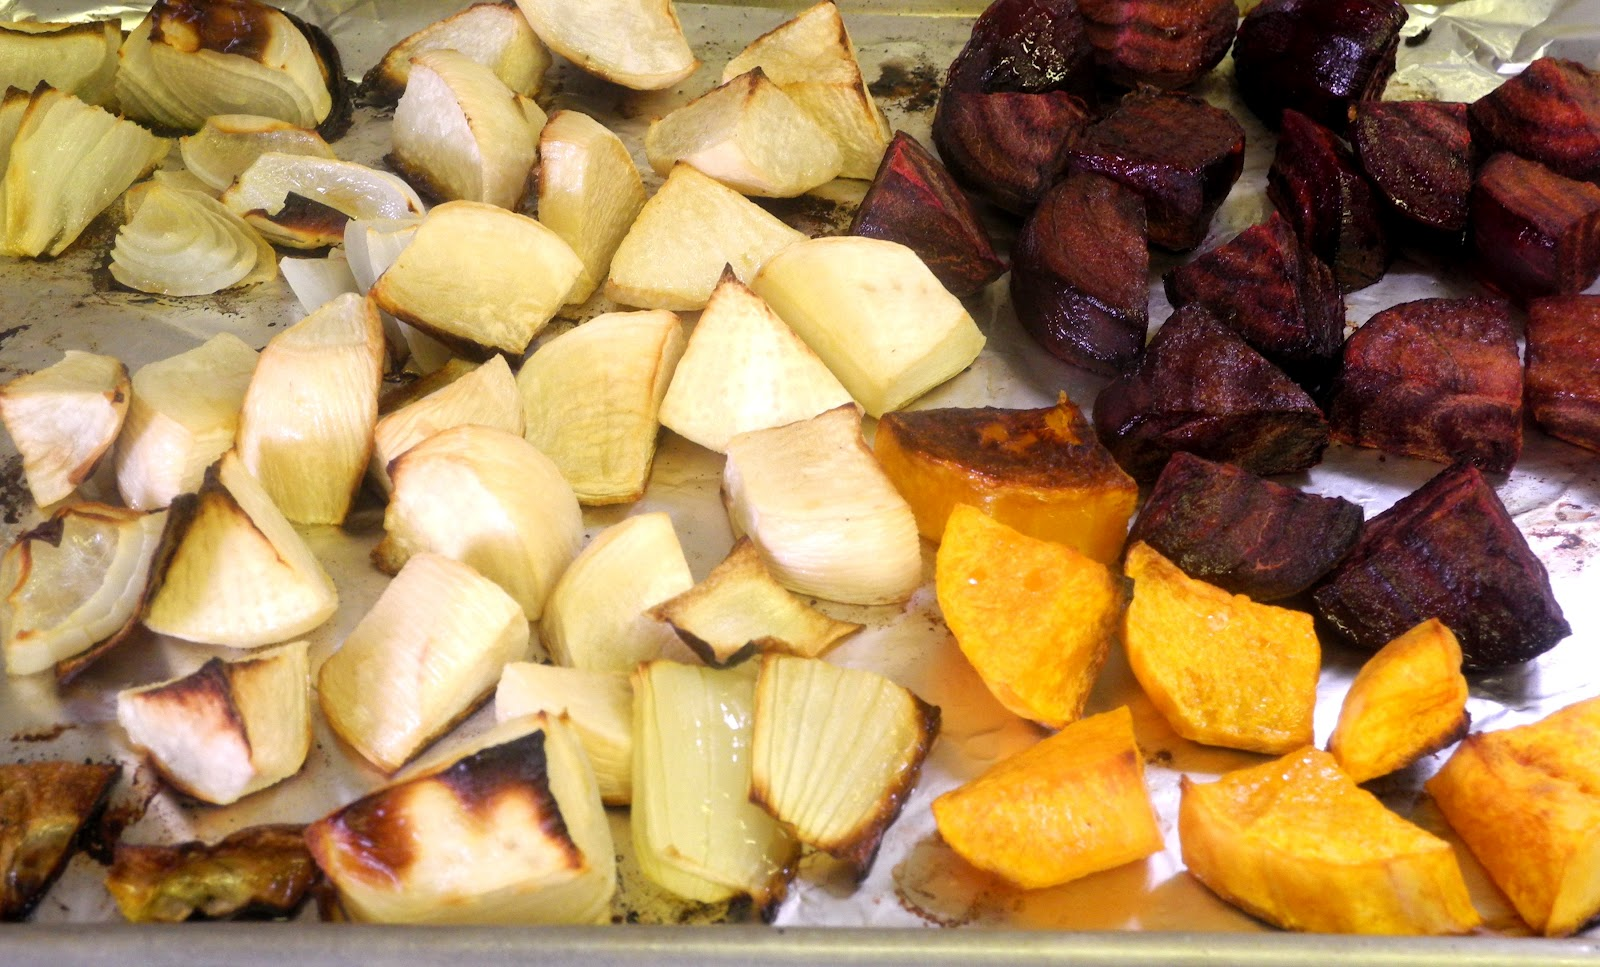 My Sweet and Savory: My Meatless Mondays - Roasted Root Vegetables